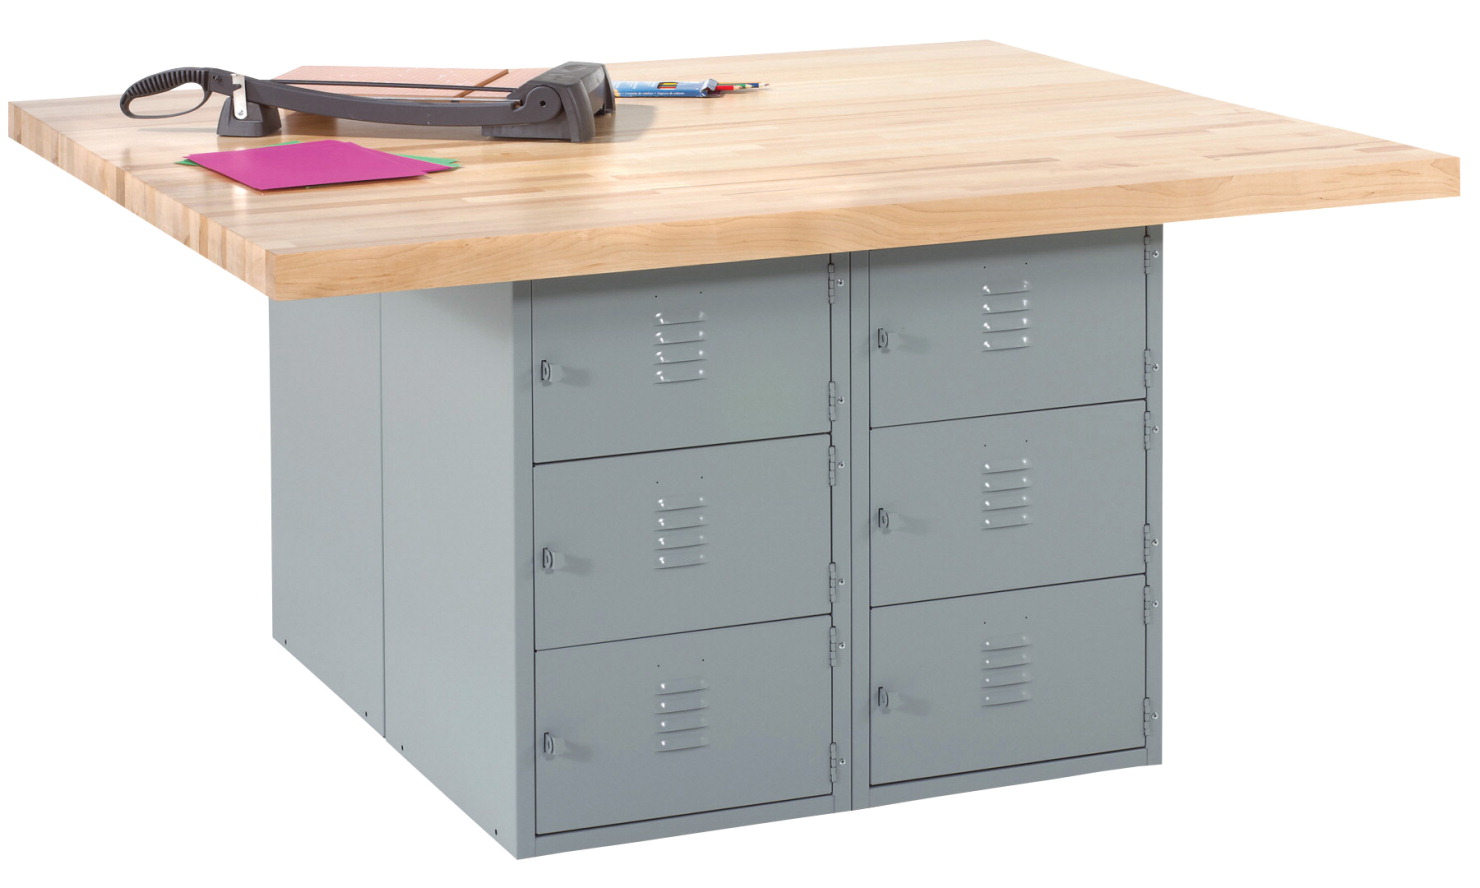 Diversified Woodcrafts 4 Station 12 Locker Workbench, 64 x 54 x 33-1/4 Inches, Various Options